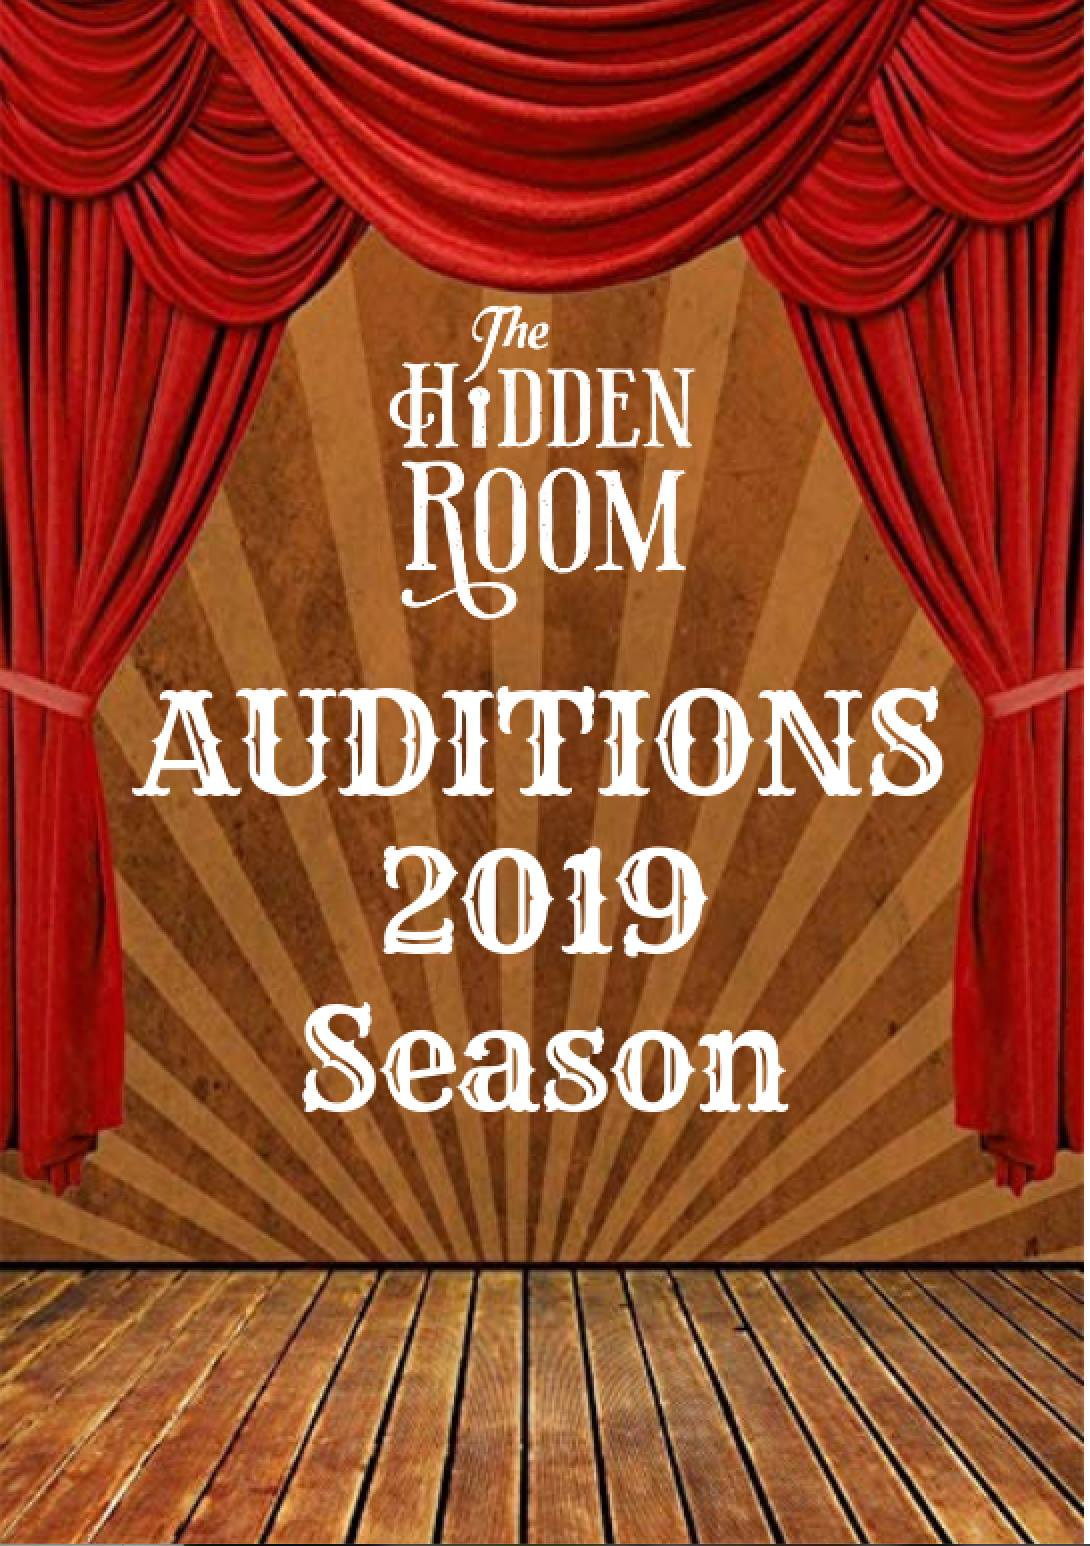 Auditions for upcoming season